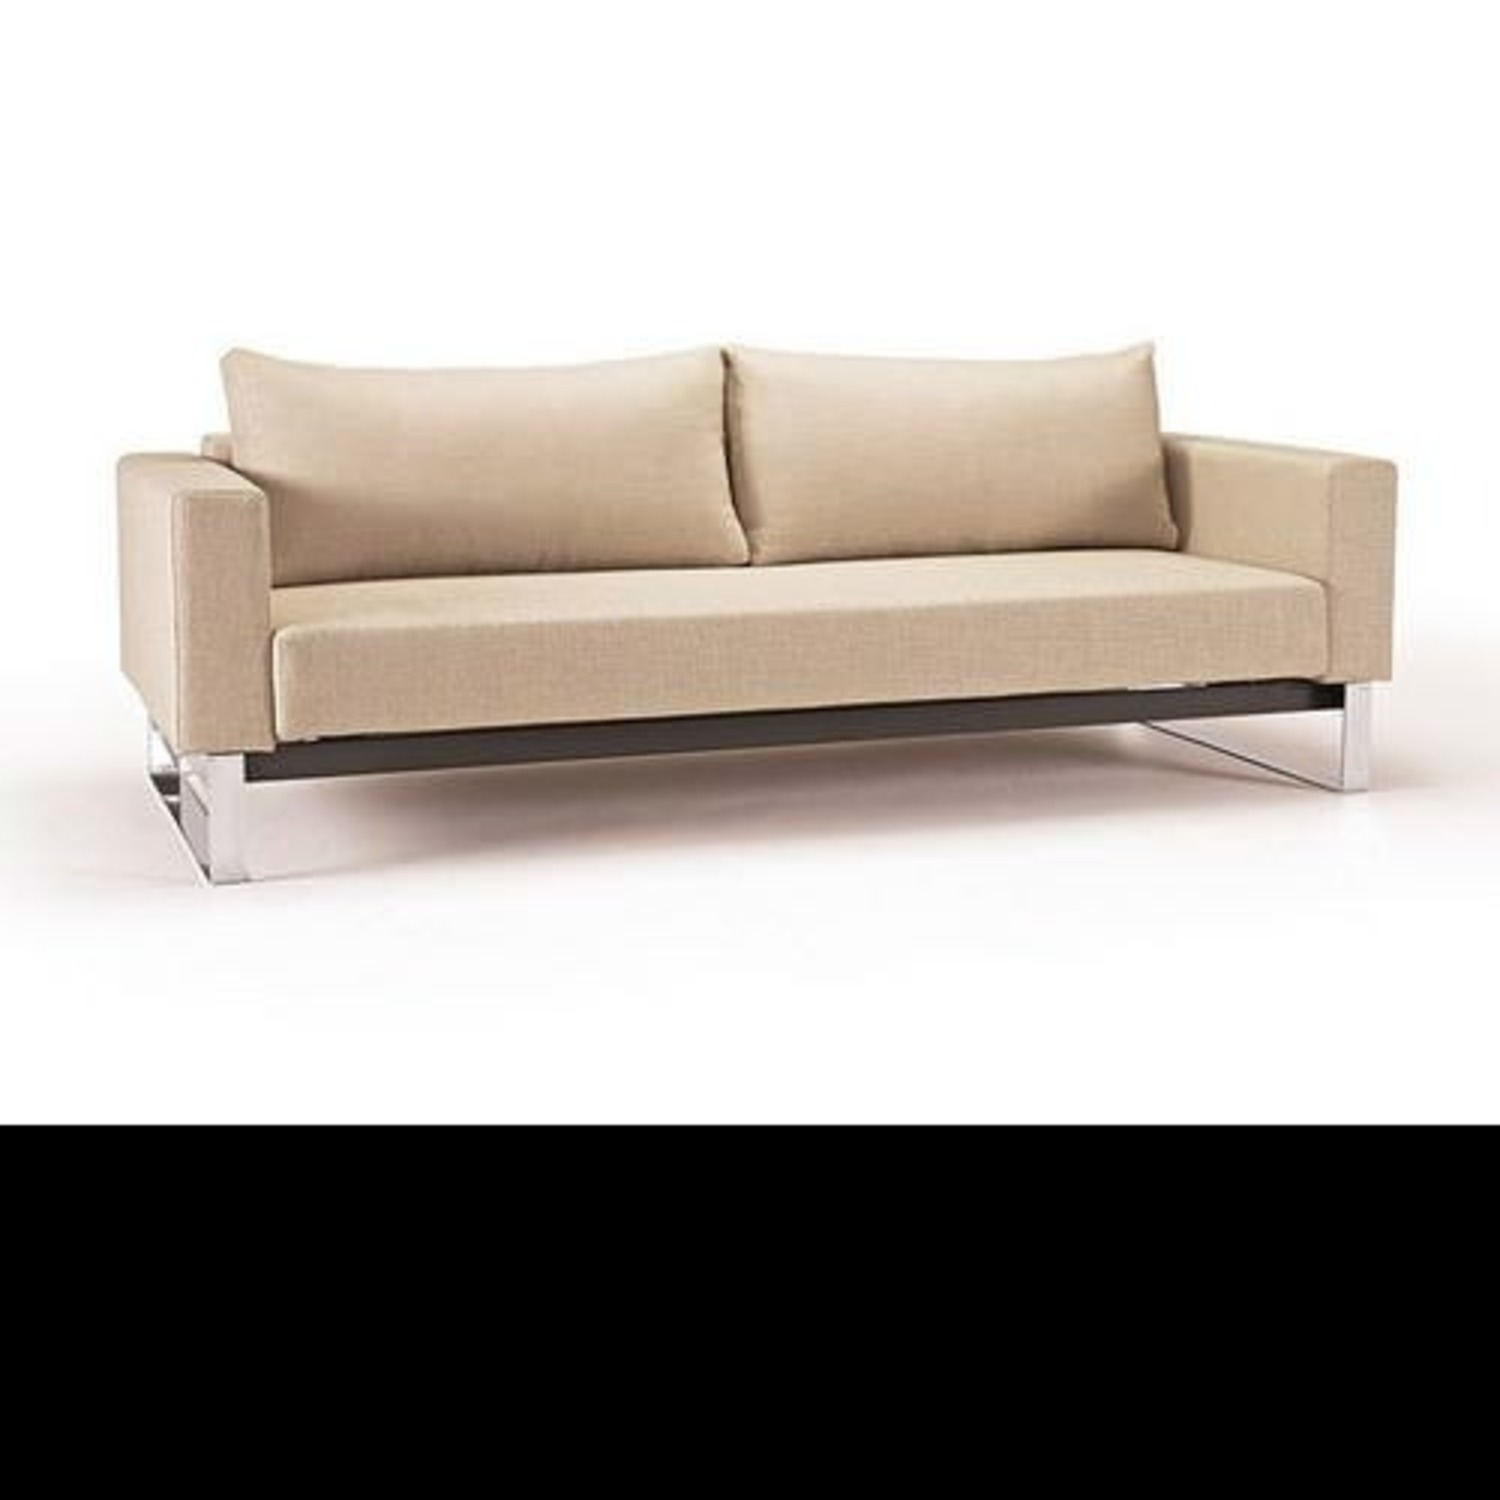 Innovation Cassius Sleek Convertible Sofa (Khaki) - image-1